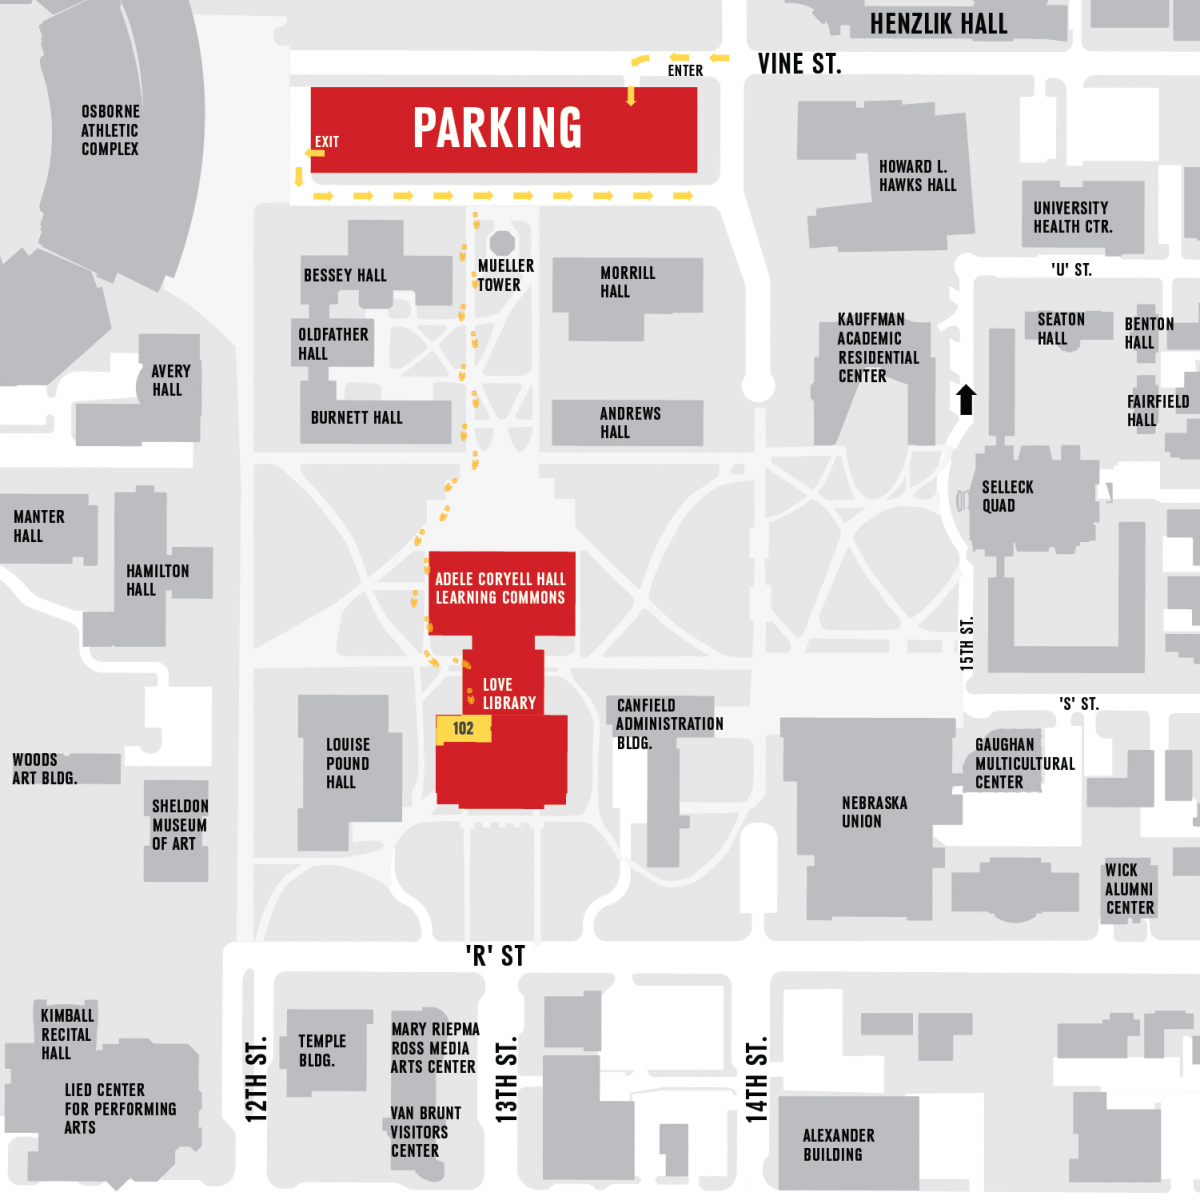 Map shows a path from the parking Lot to 102 Love Library